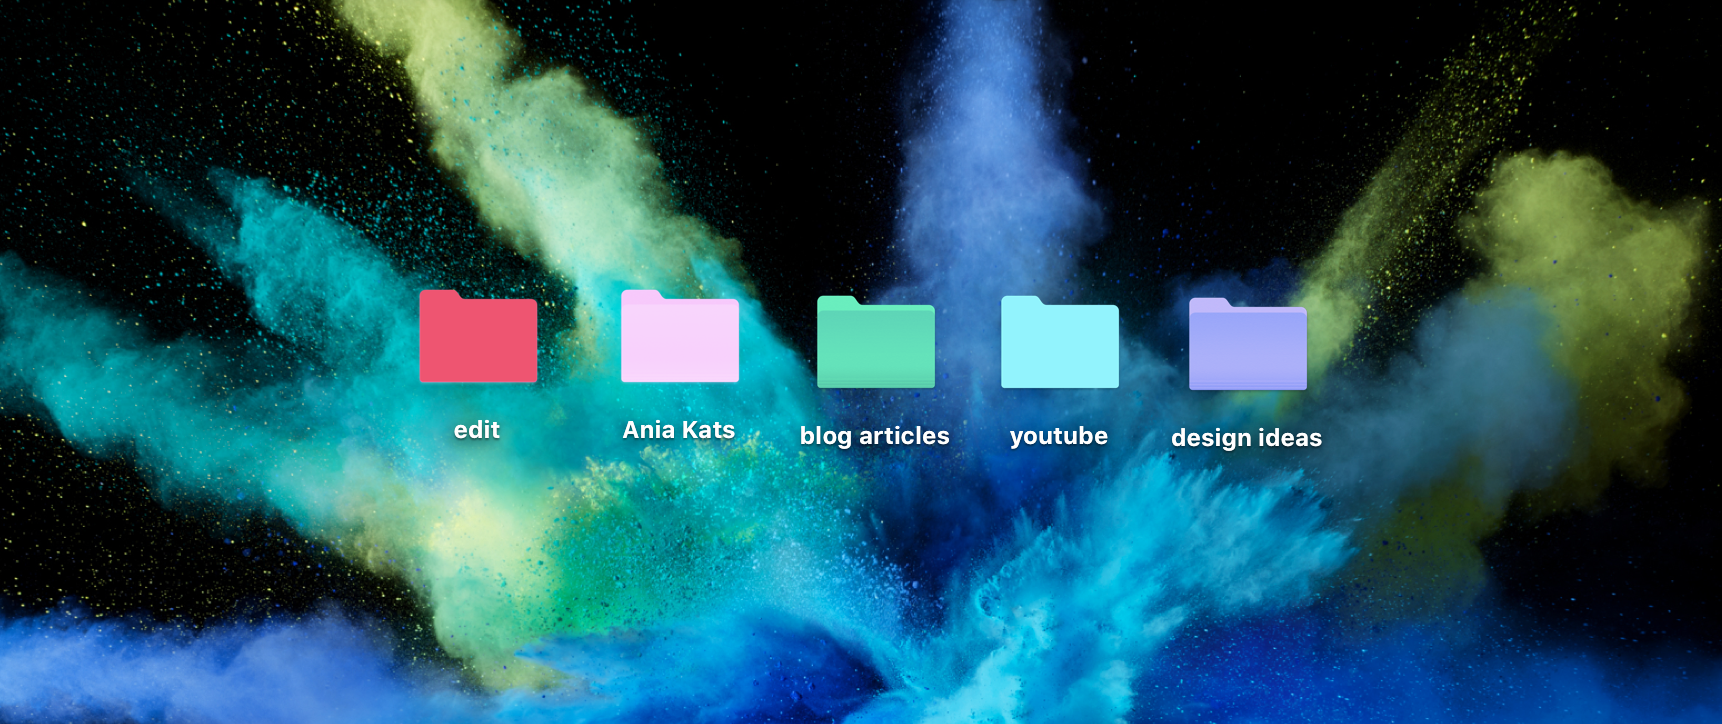 How To Change Folder Color On MacOS Sierra - Ania Klaudia